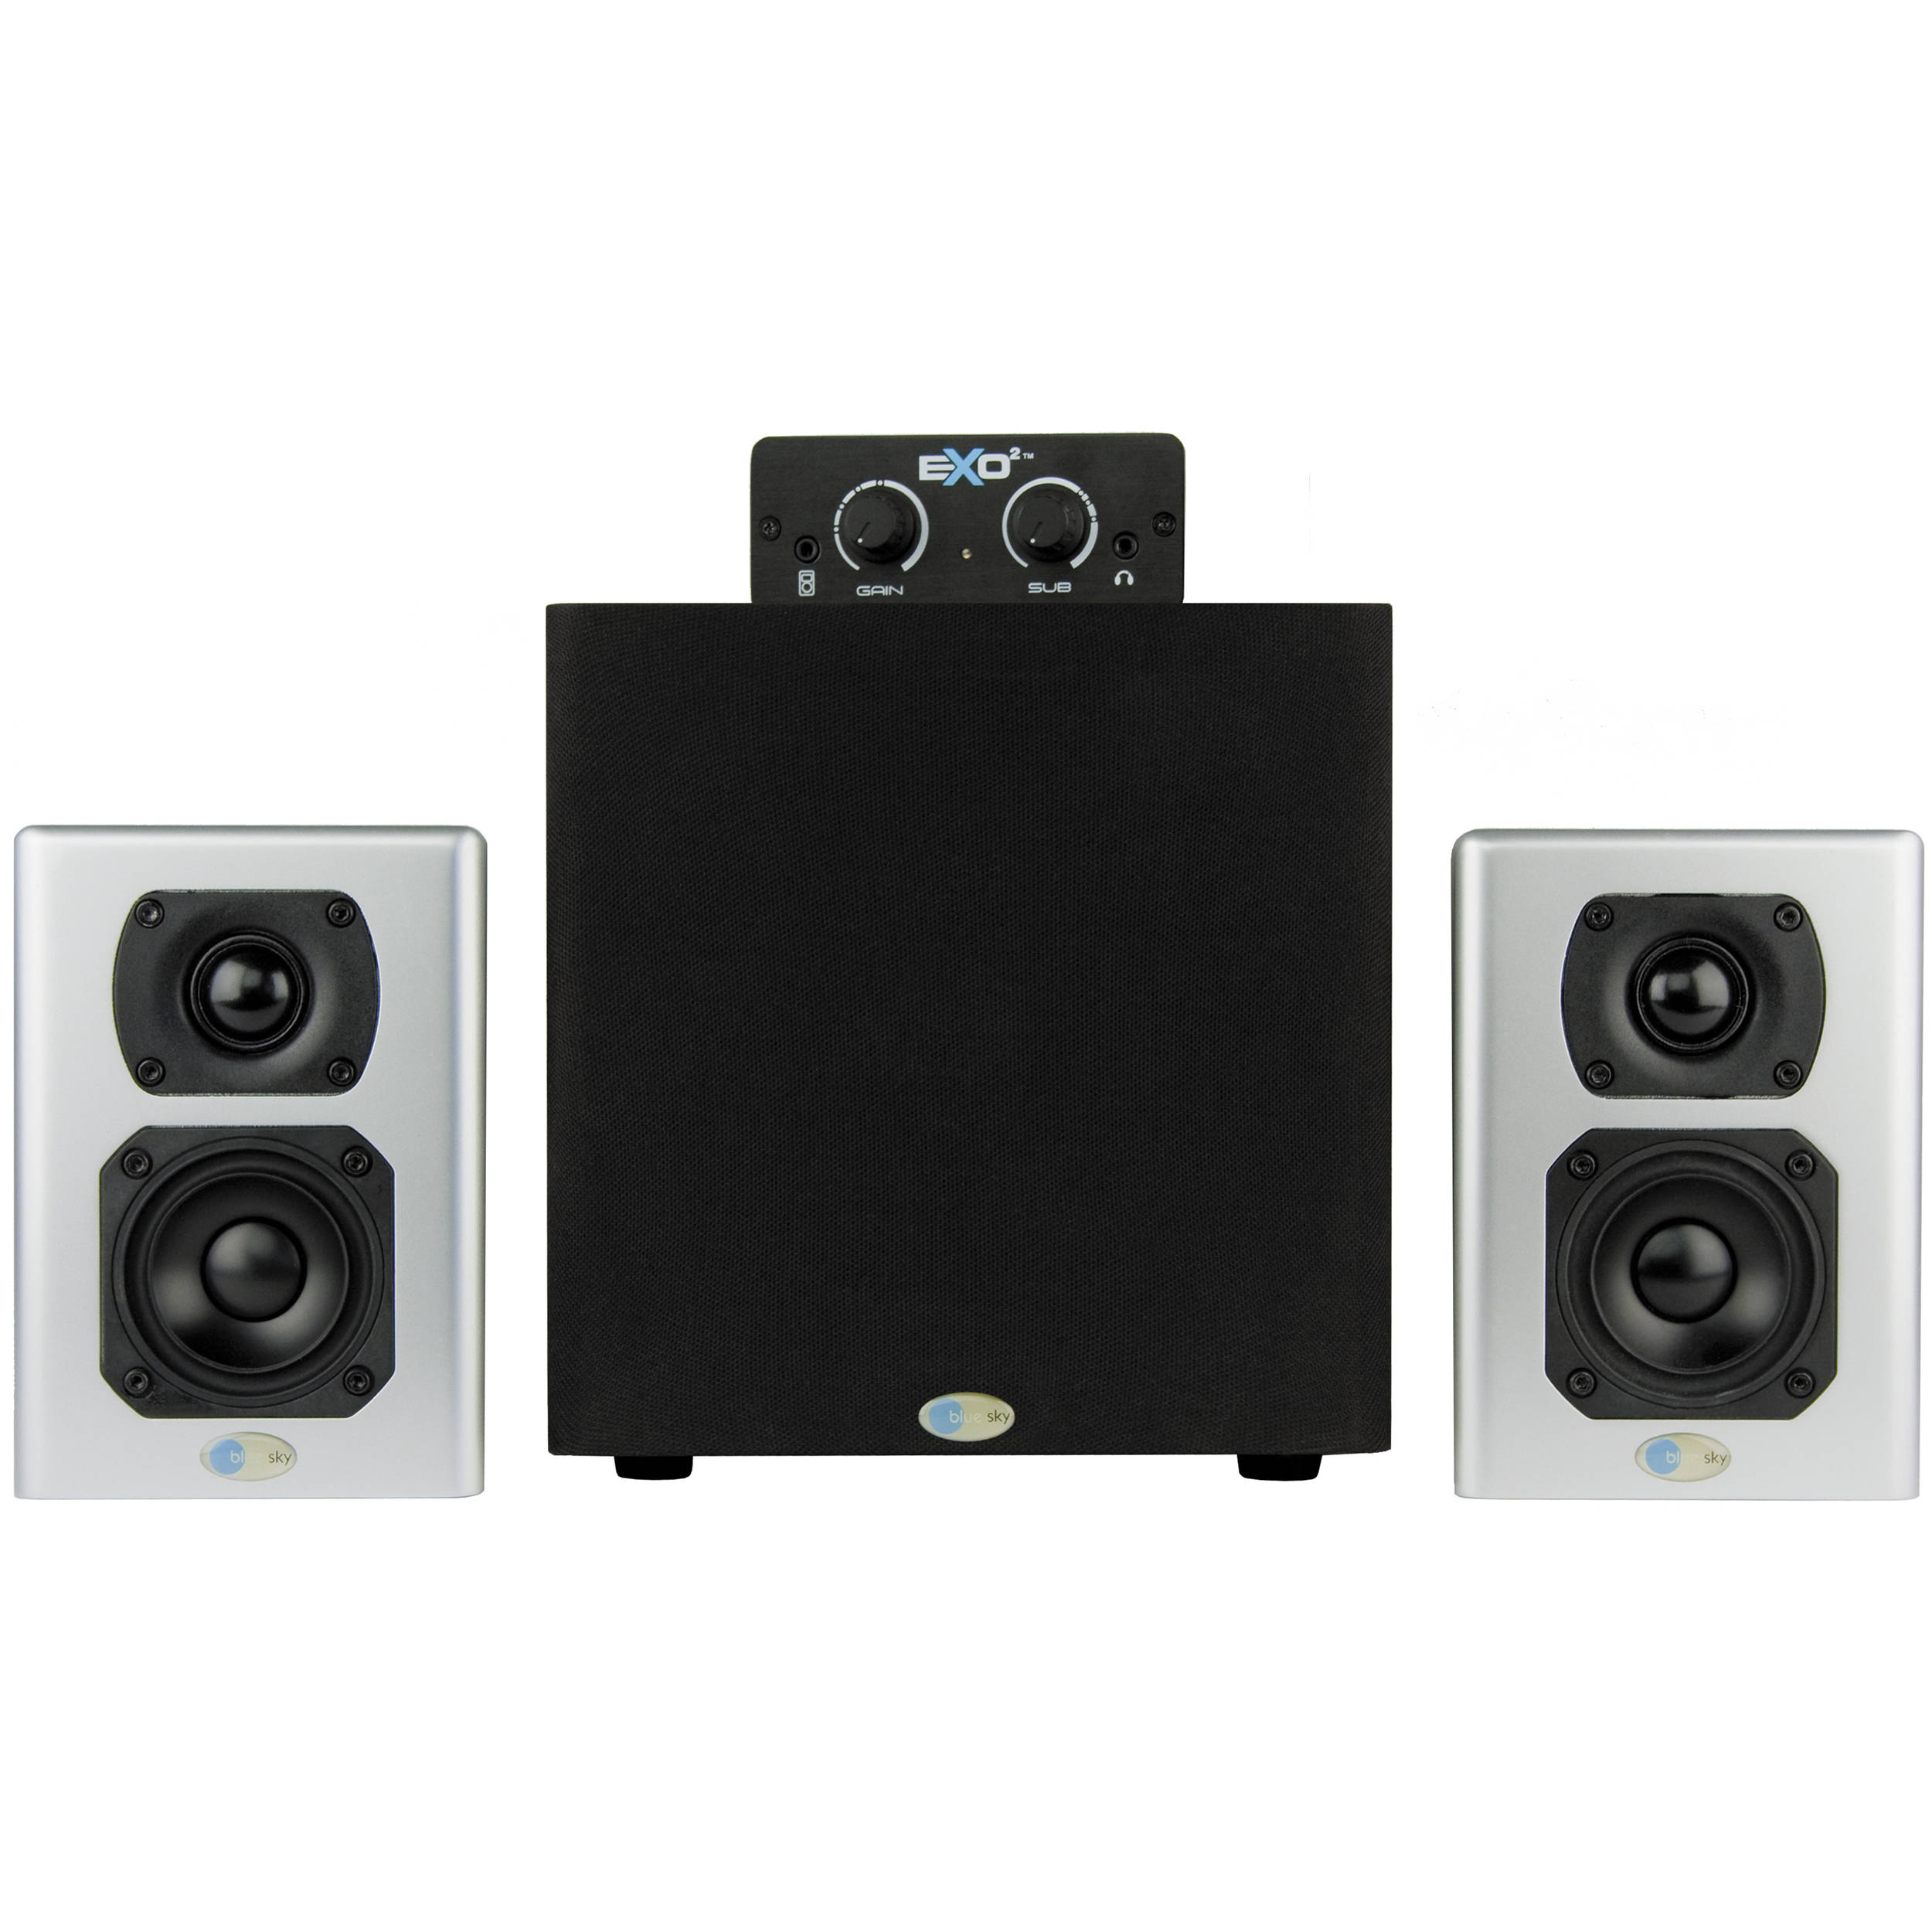 Blue Sky International Exo2 Active 21 Desktop Speaker Bh Free Plans Odd Way Of Wiring Three Speakers To An Amp 1 Monitoring System